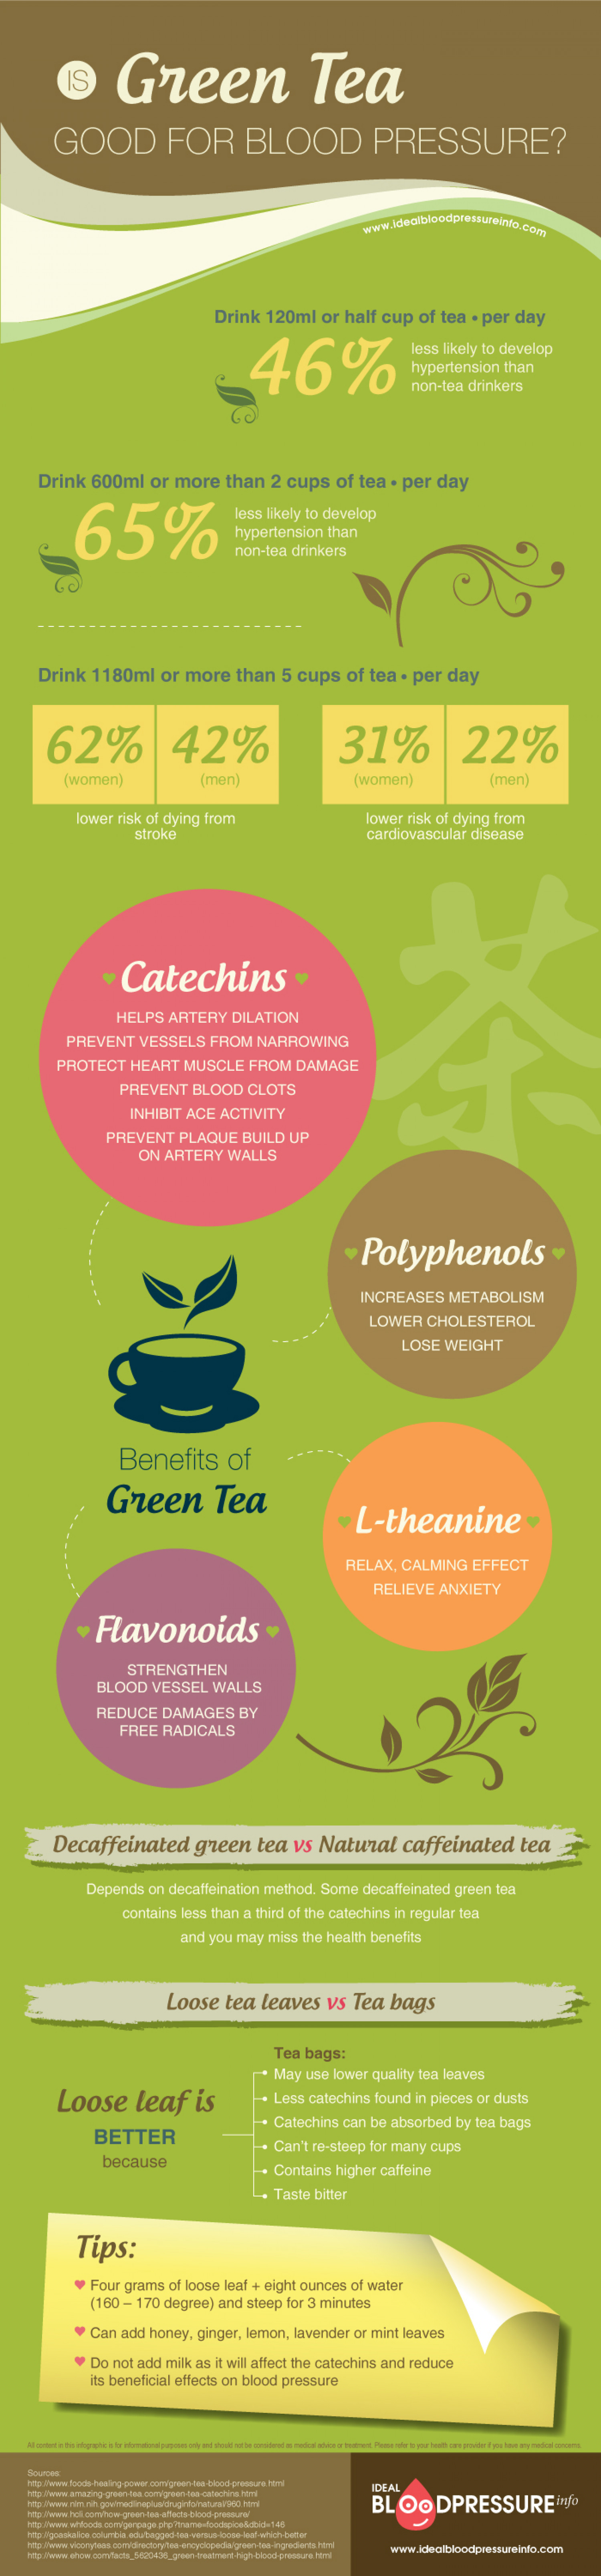 Is Green Tea Good For Blood Pressure? Infographic